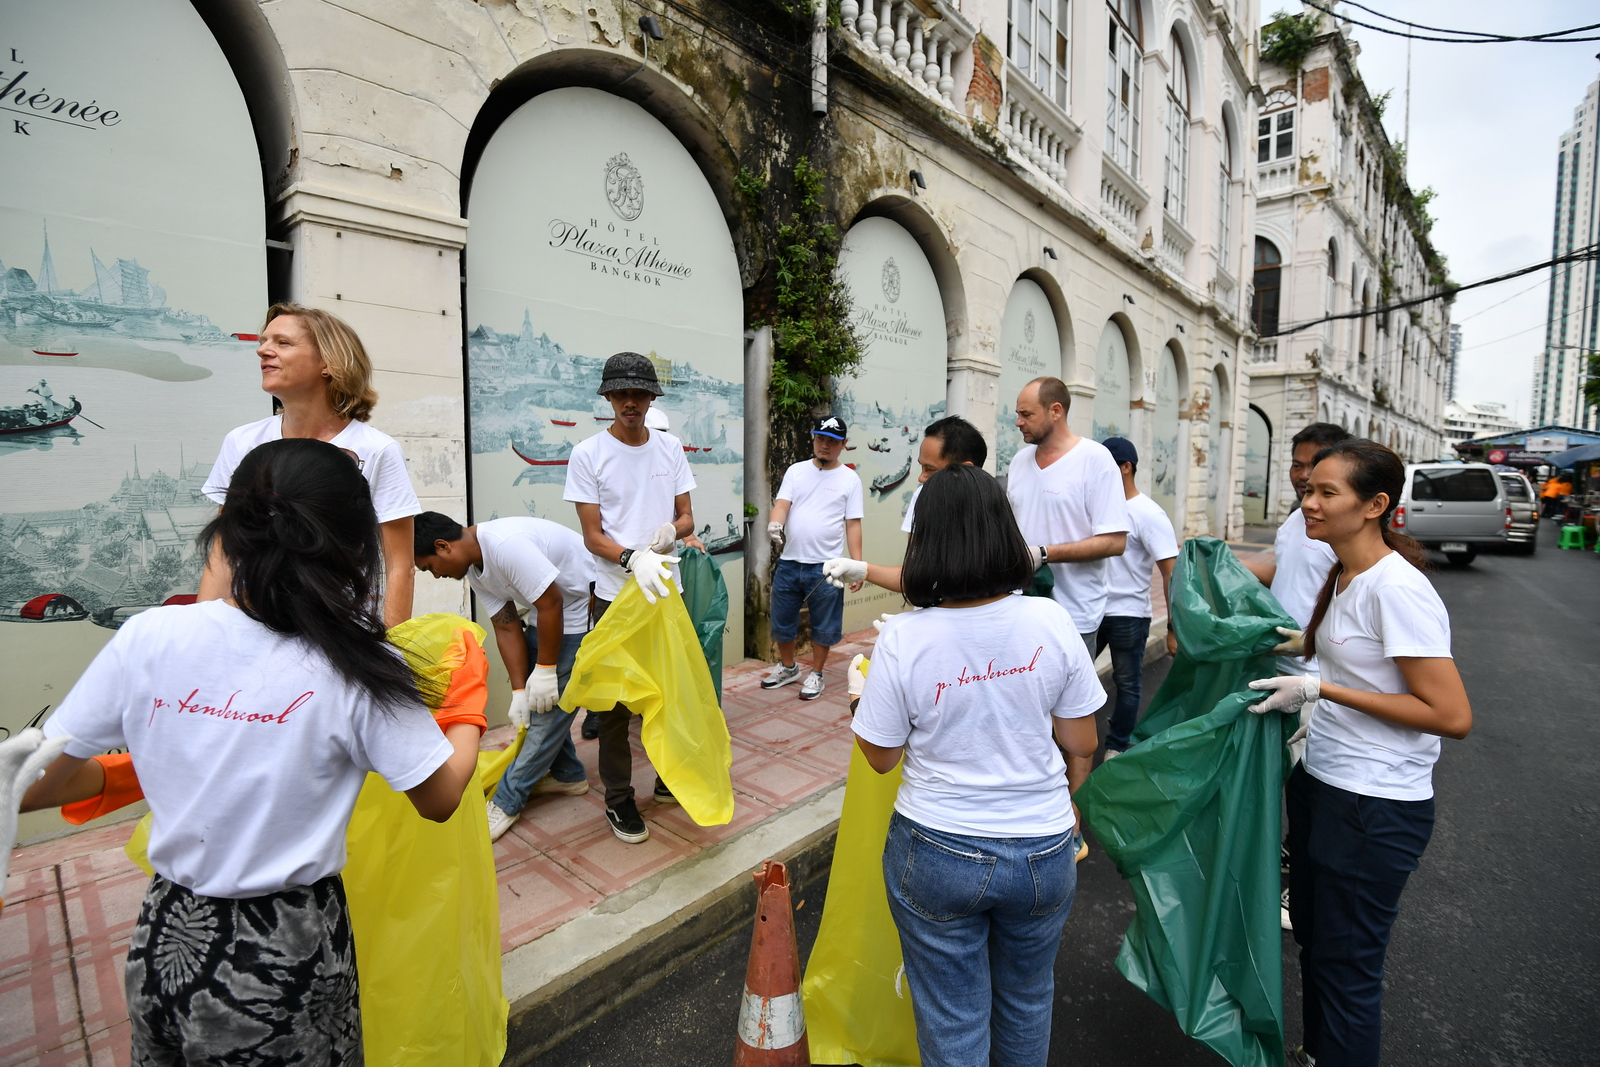 PTendercool-Event-Clean Up The World-190921-039